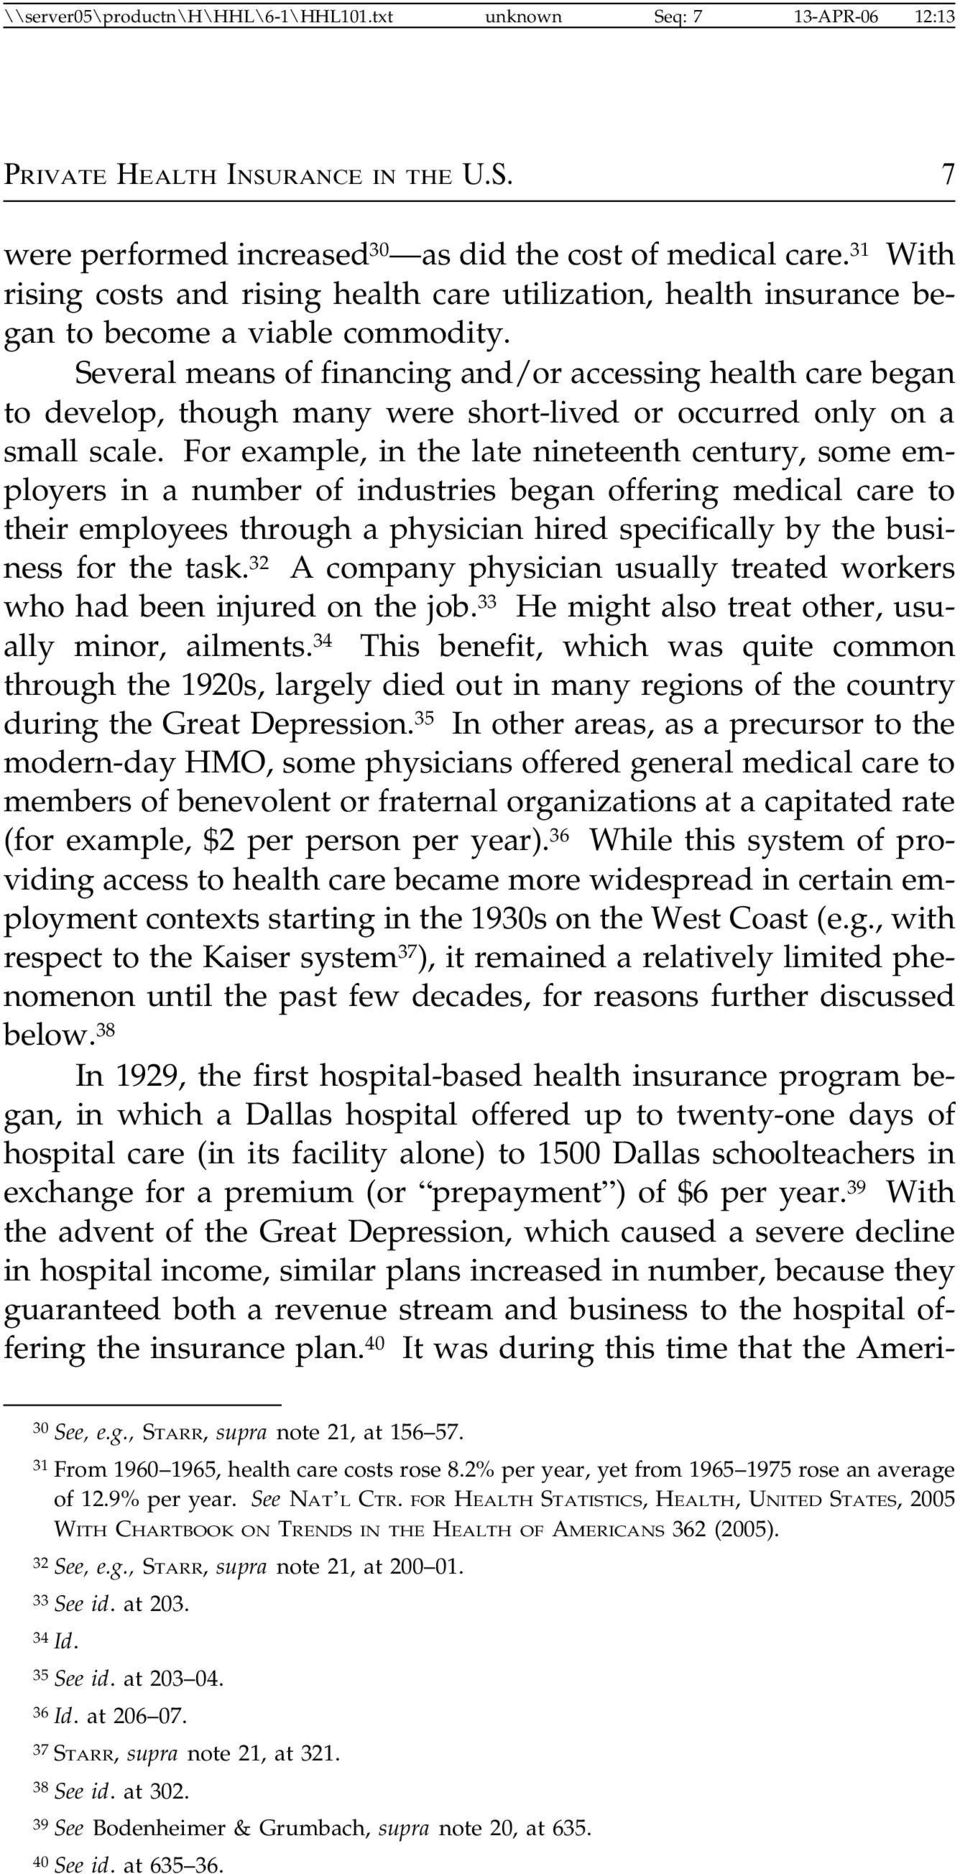 Several means of financing and/or accessing health care began to develop, though many were short-lived or occurred only on a small scale.